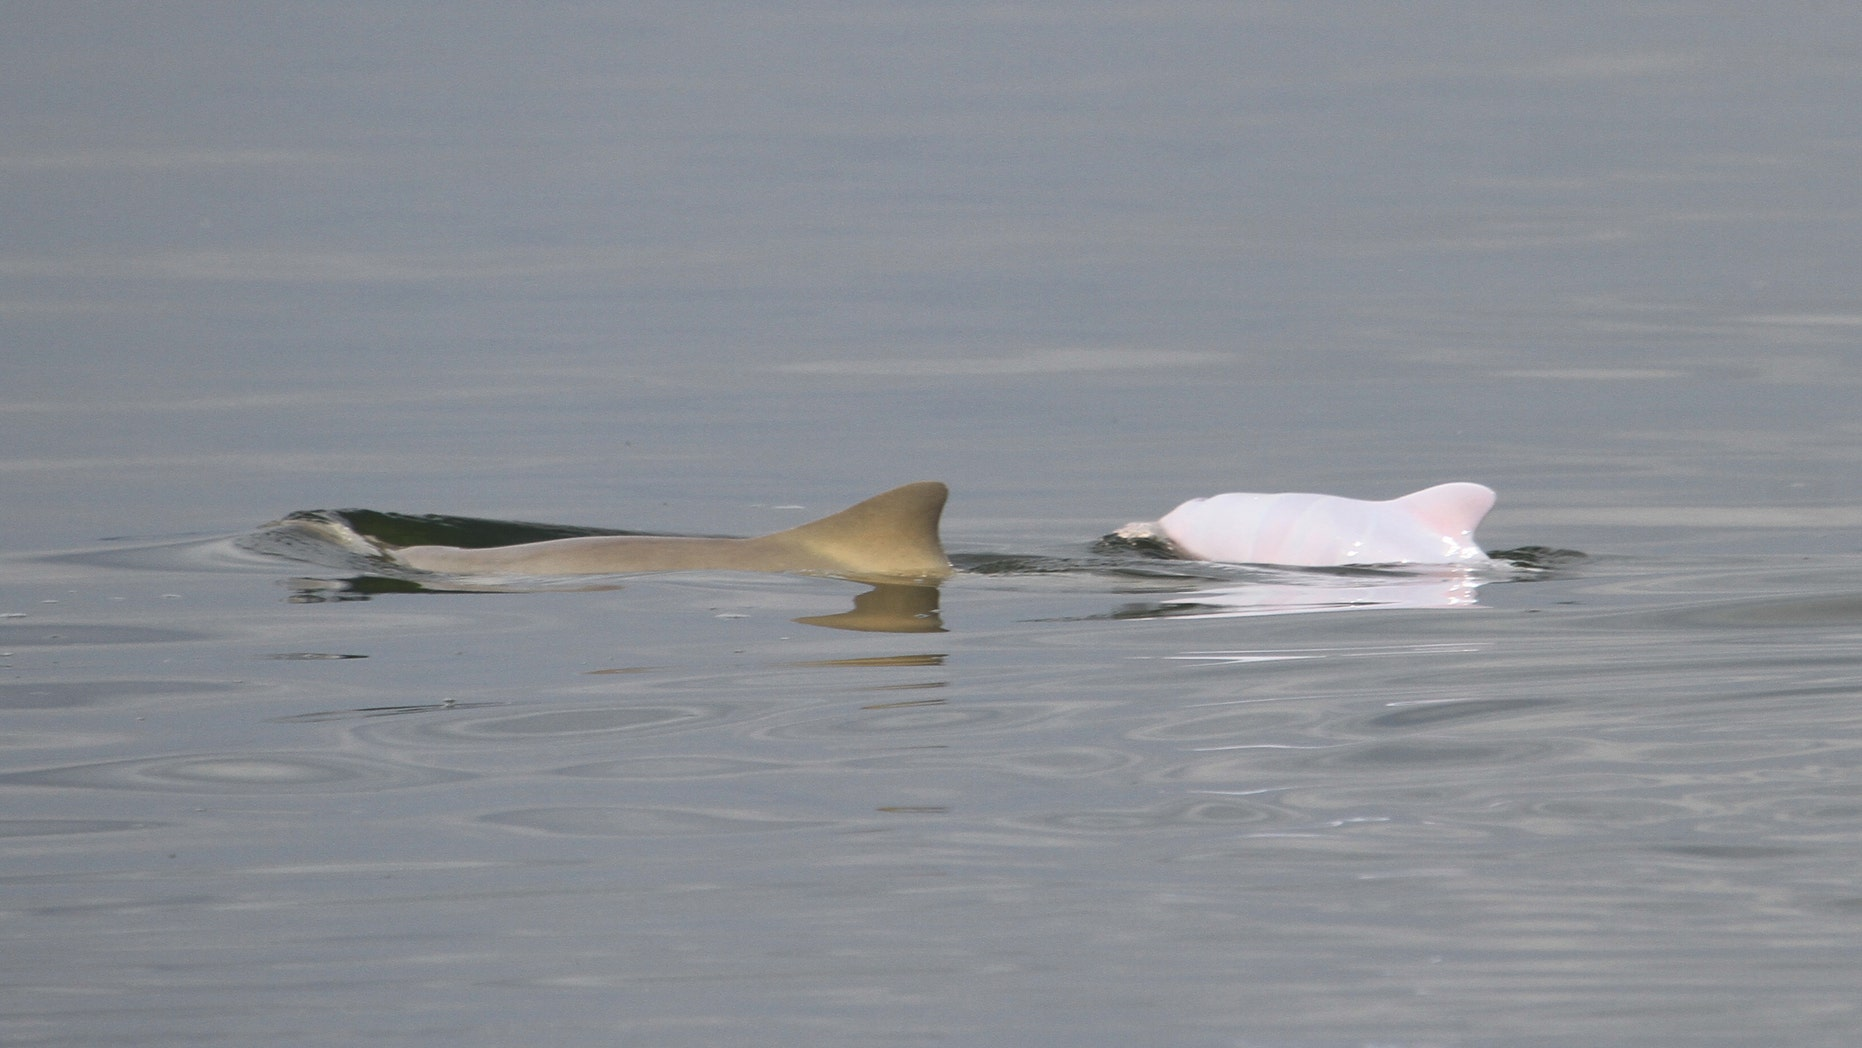 In this photo taken Nov. 7, 2011 and released by Projeto Toninhas/Univille, an albino dolphin, right, and an adult dolphin swim at the Baia da Babitonga, in Santa Catarina state, Brazil. Biologists studying an endangered dolphin species that lives only on the southern coast of South America say they've found the first recorded instance of an albino baby among them. (AP Photo/Projeto Toninhas/Univille)